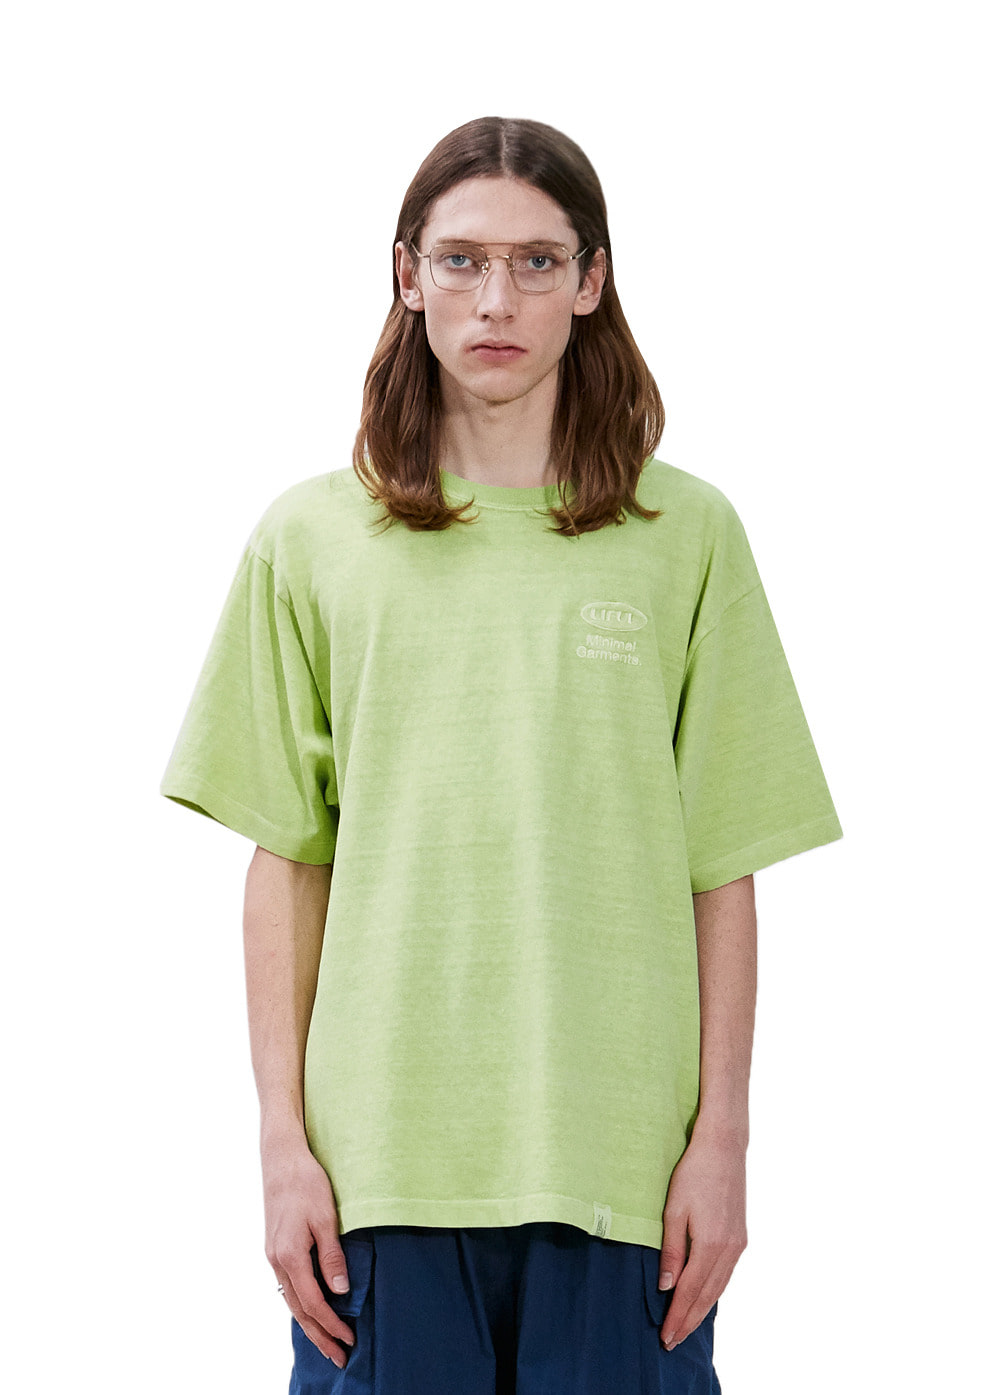 P-DYED OVAL LOGO TEE yellow green